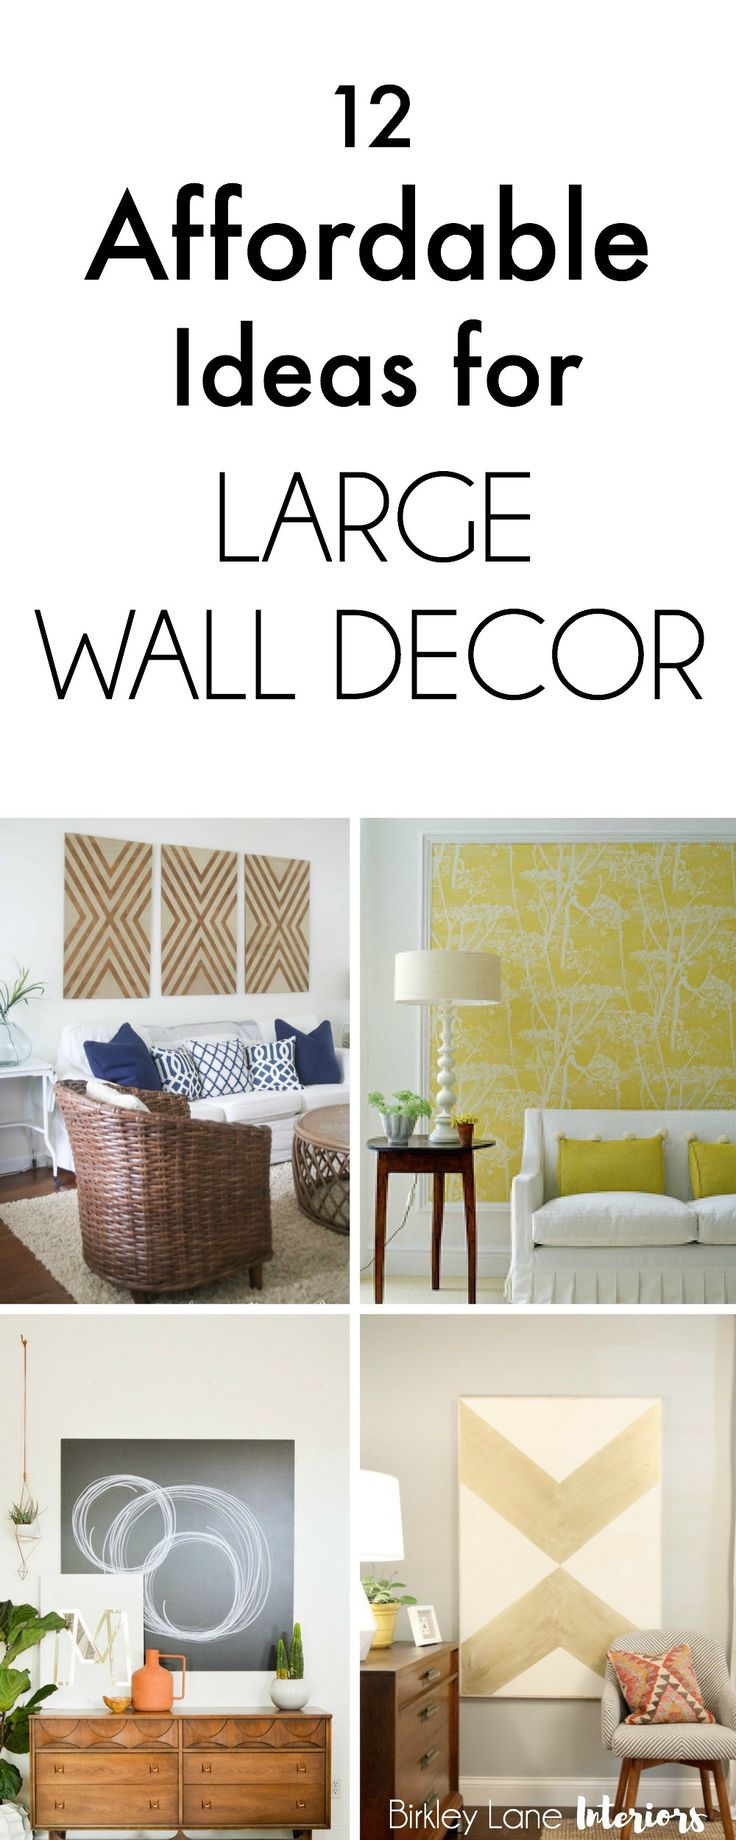 Ideas to decorate a large wall in living room